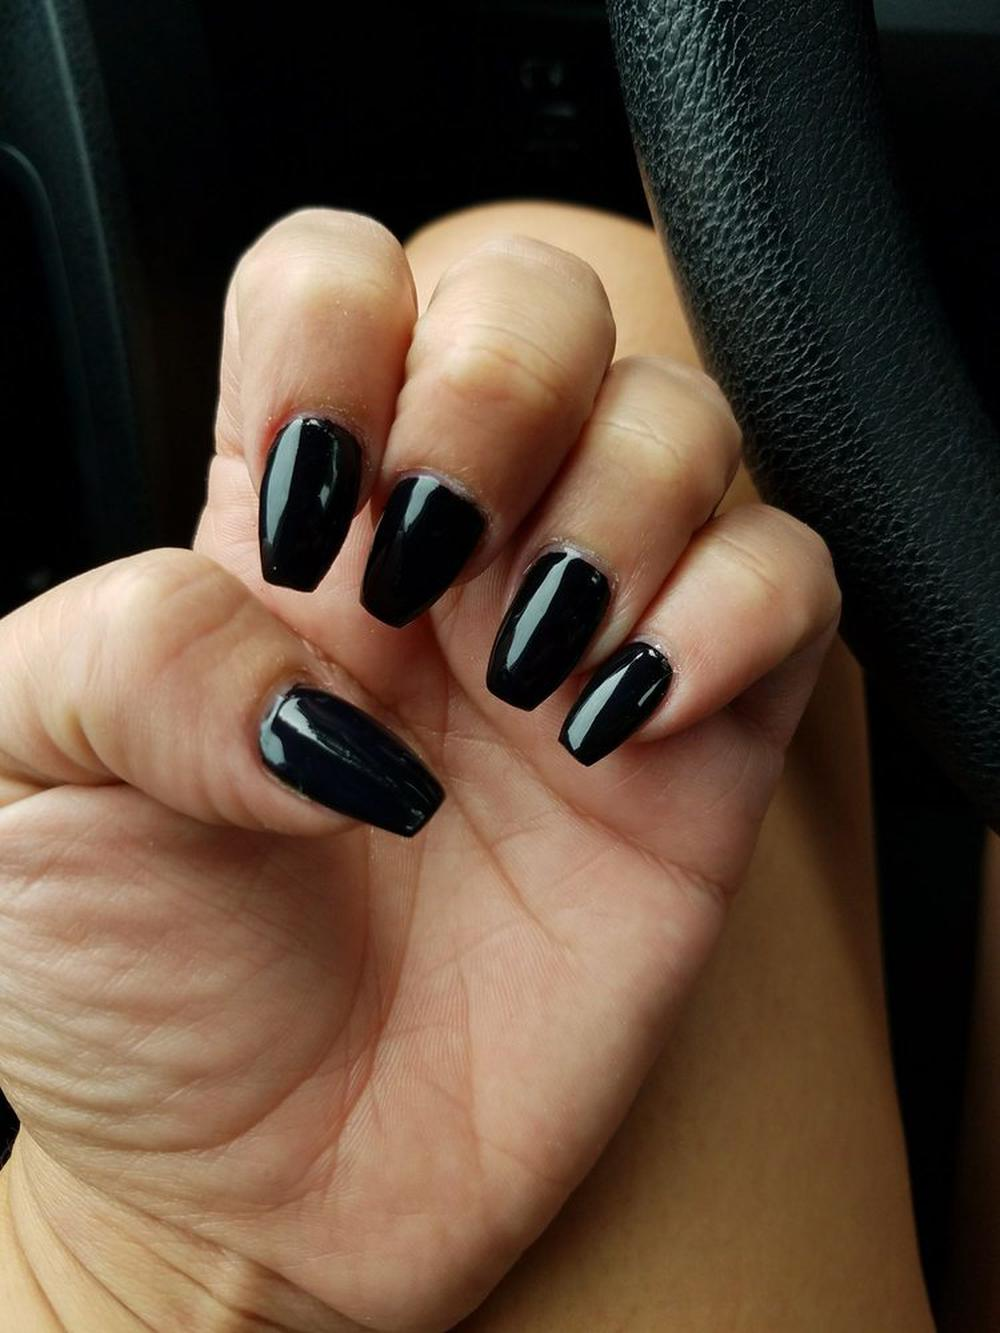 Nails by Tin